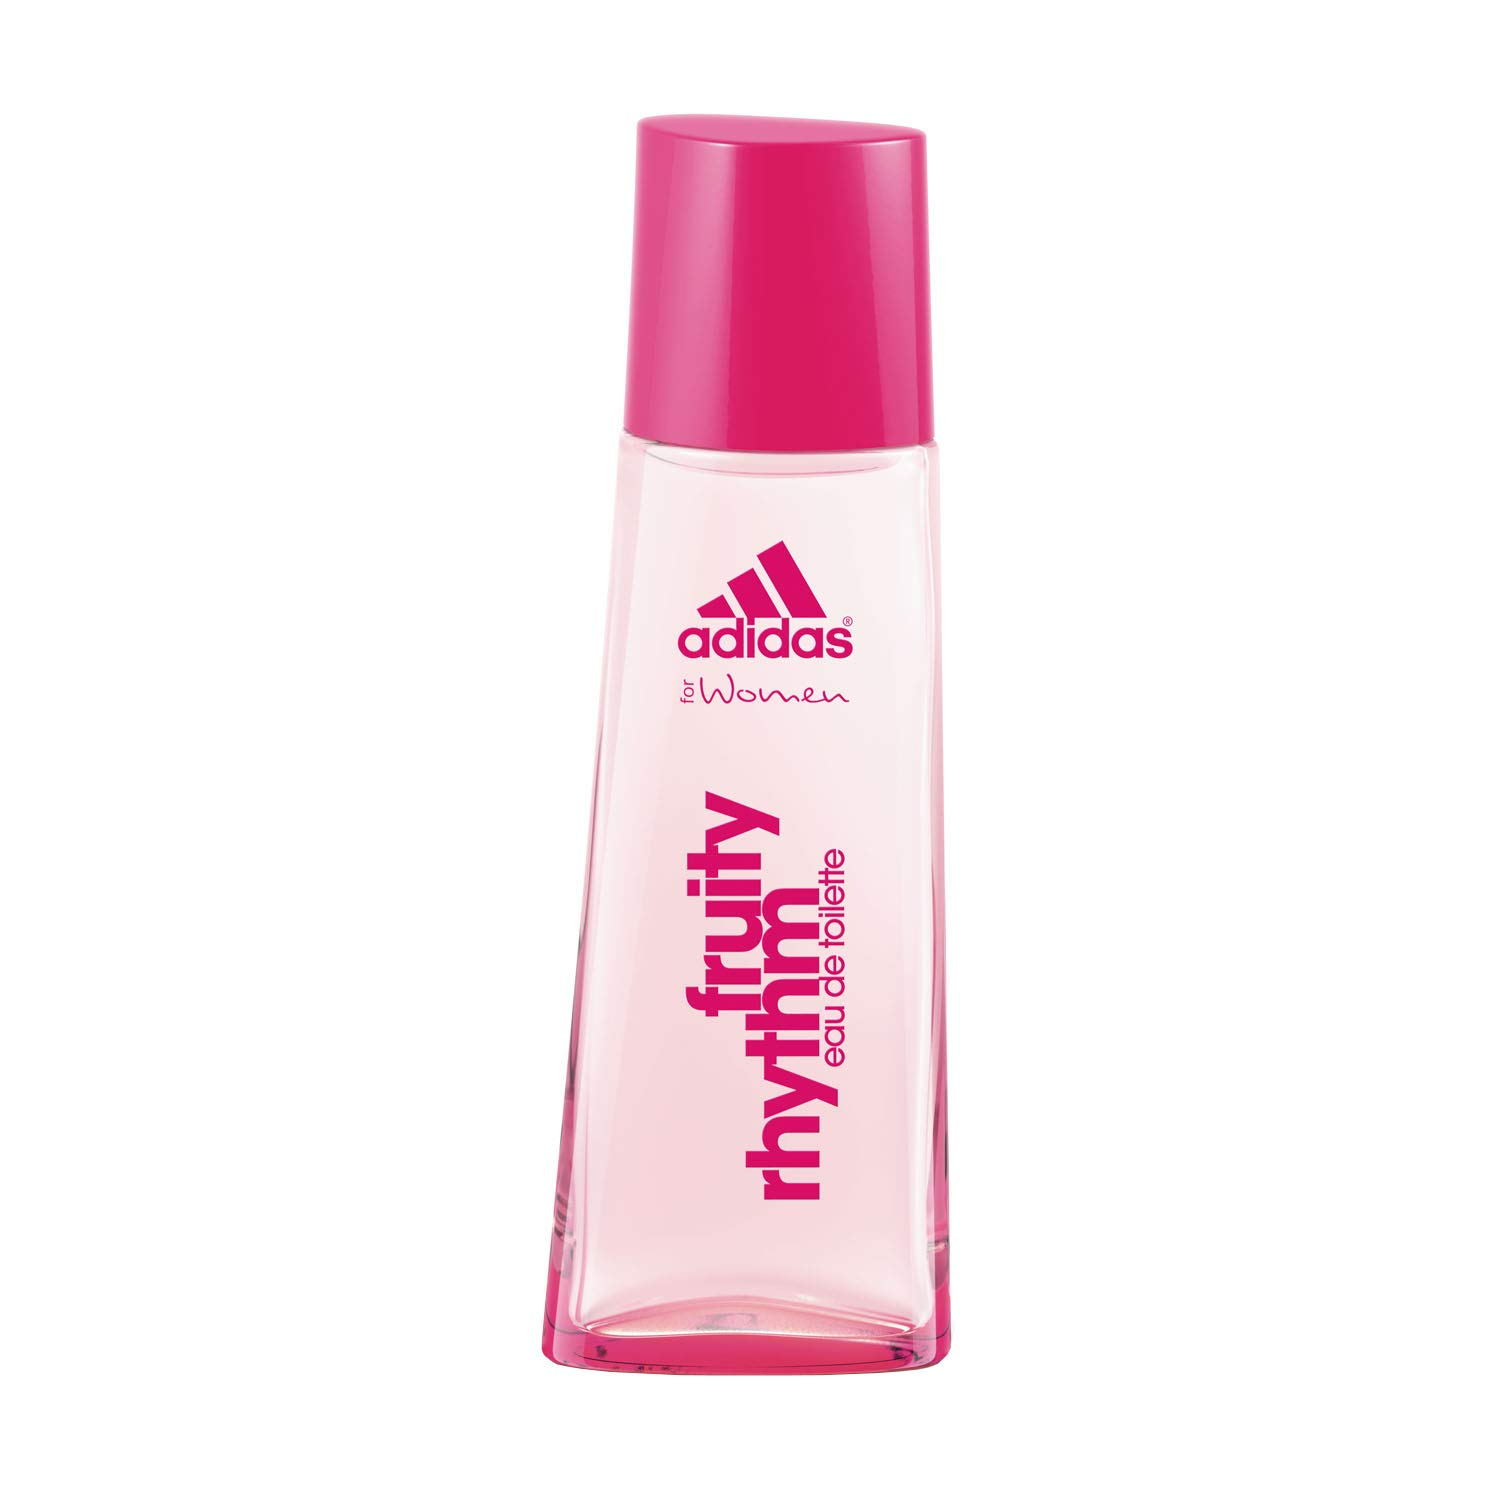 Adidas Fruity Rhythm for Women, 1.7-Ounce EDT Spray 142087